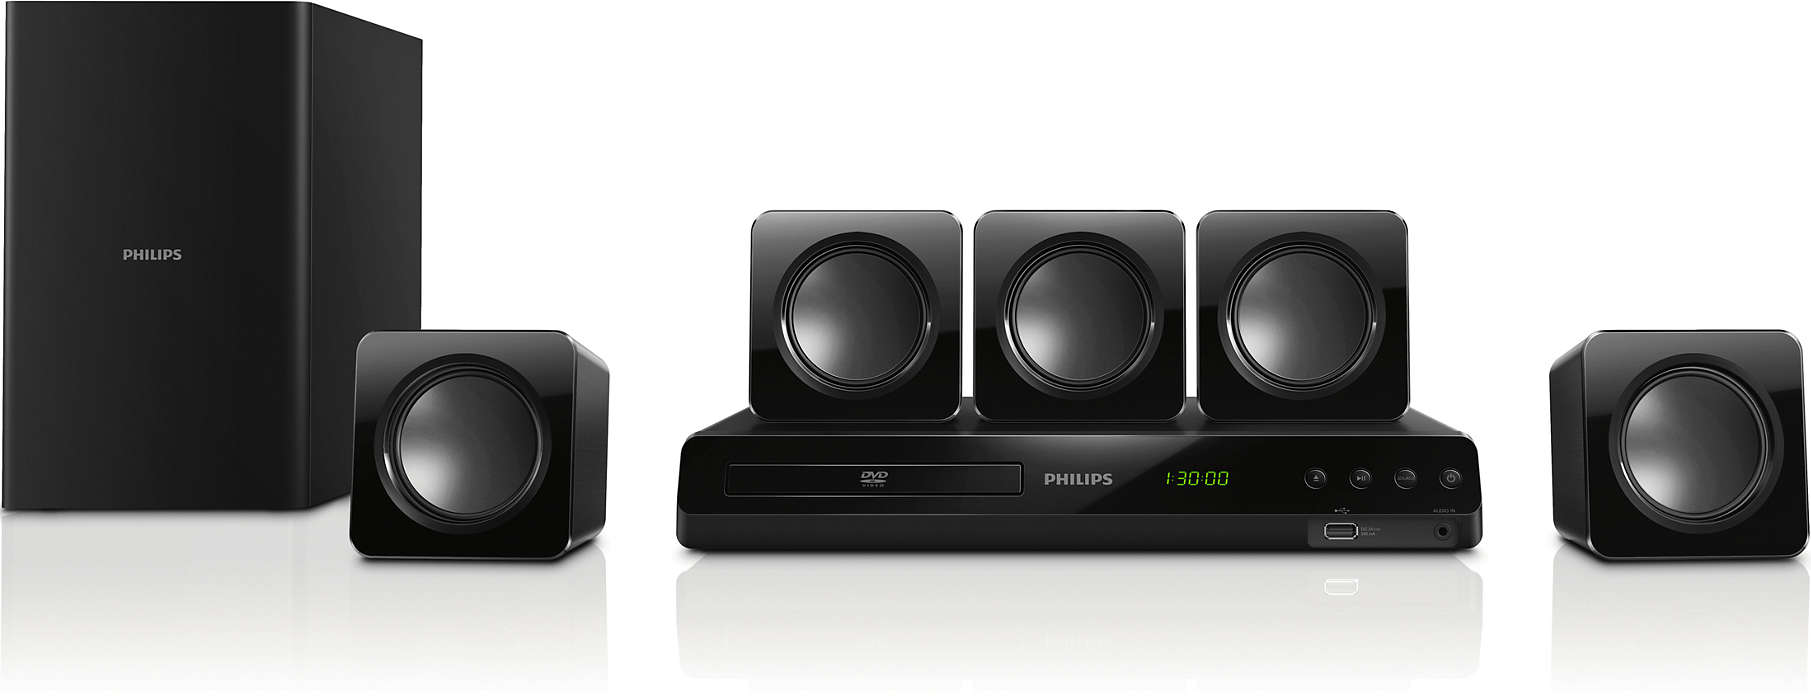 Krachtige Surround Sound uit compacte luidsprekers